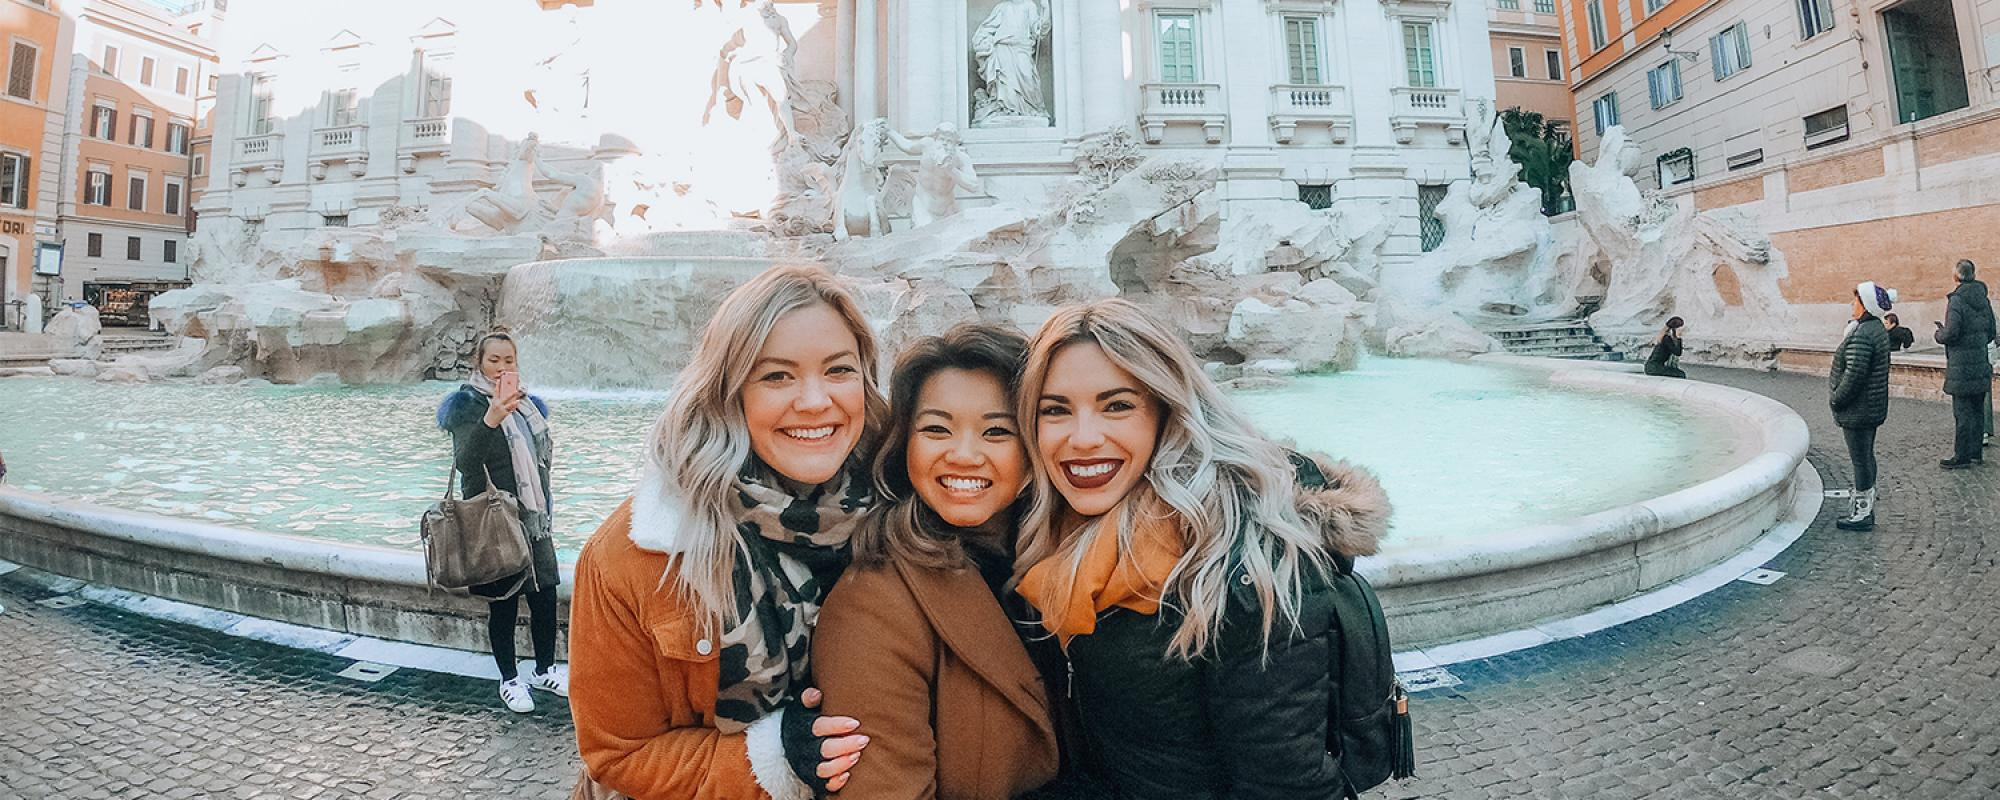 Women at Trevi Fountain